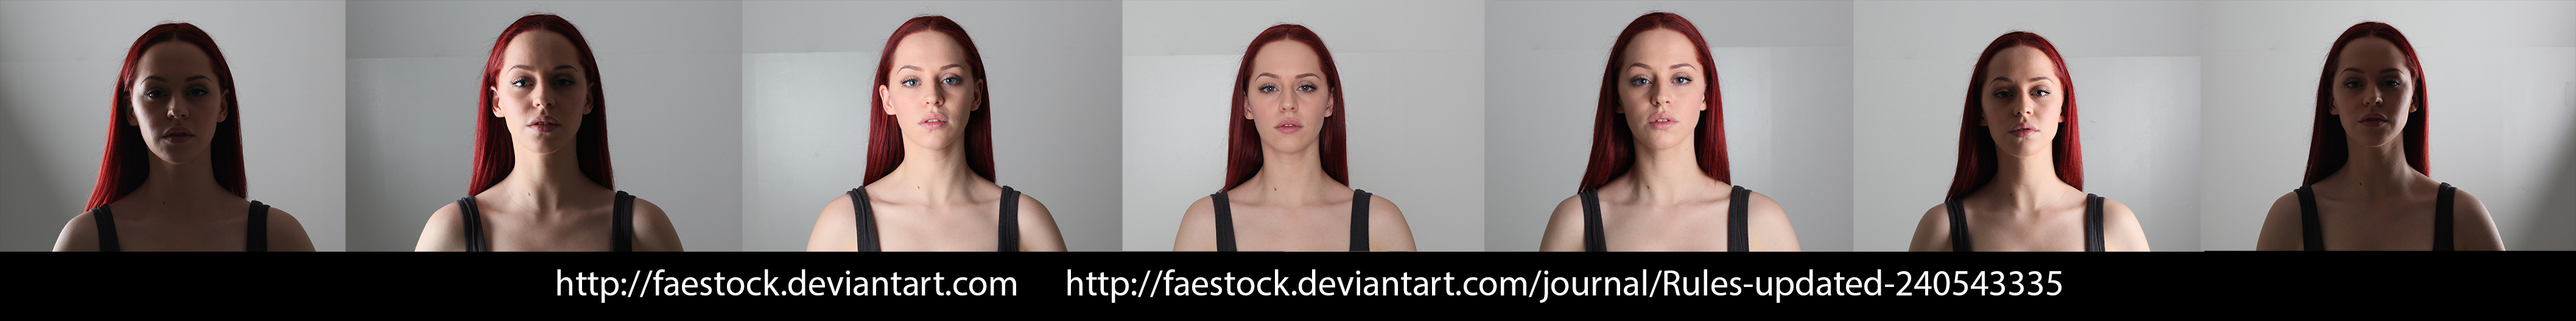 Face lighting reference 6 by faestock